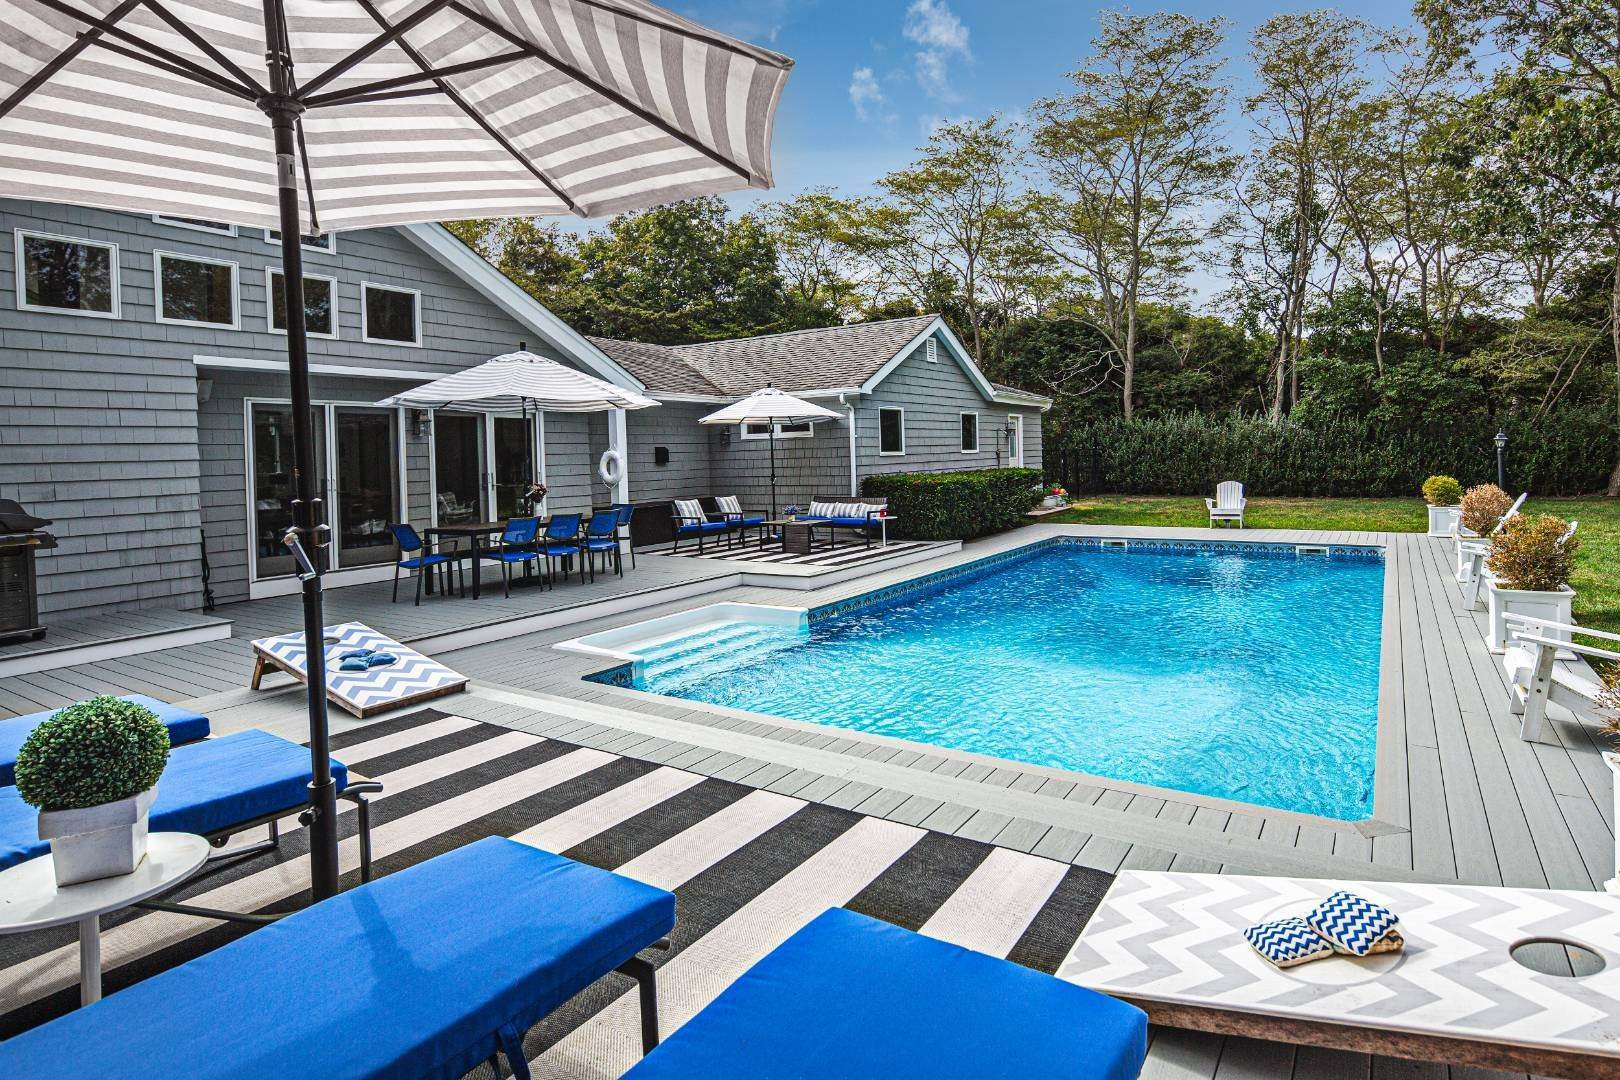 Single Family Home at Westhampton 4 Bedroom Modern With Pool Westhampton, NY 11977